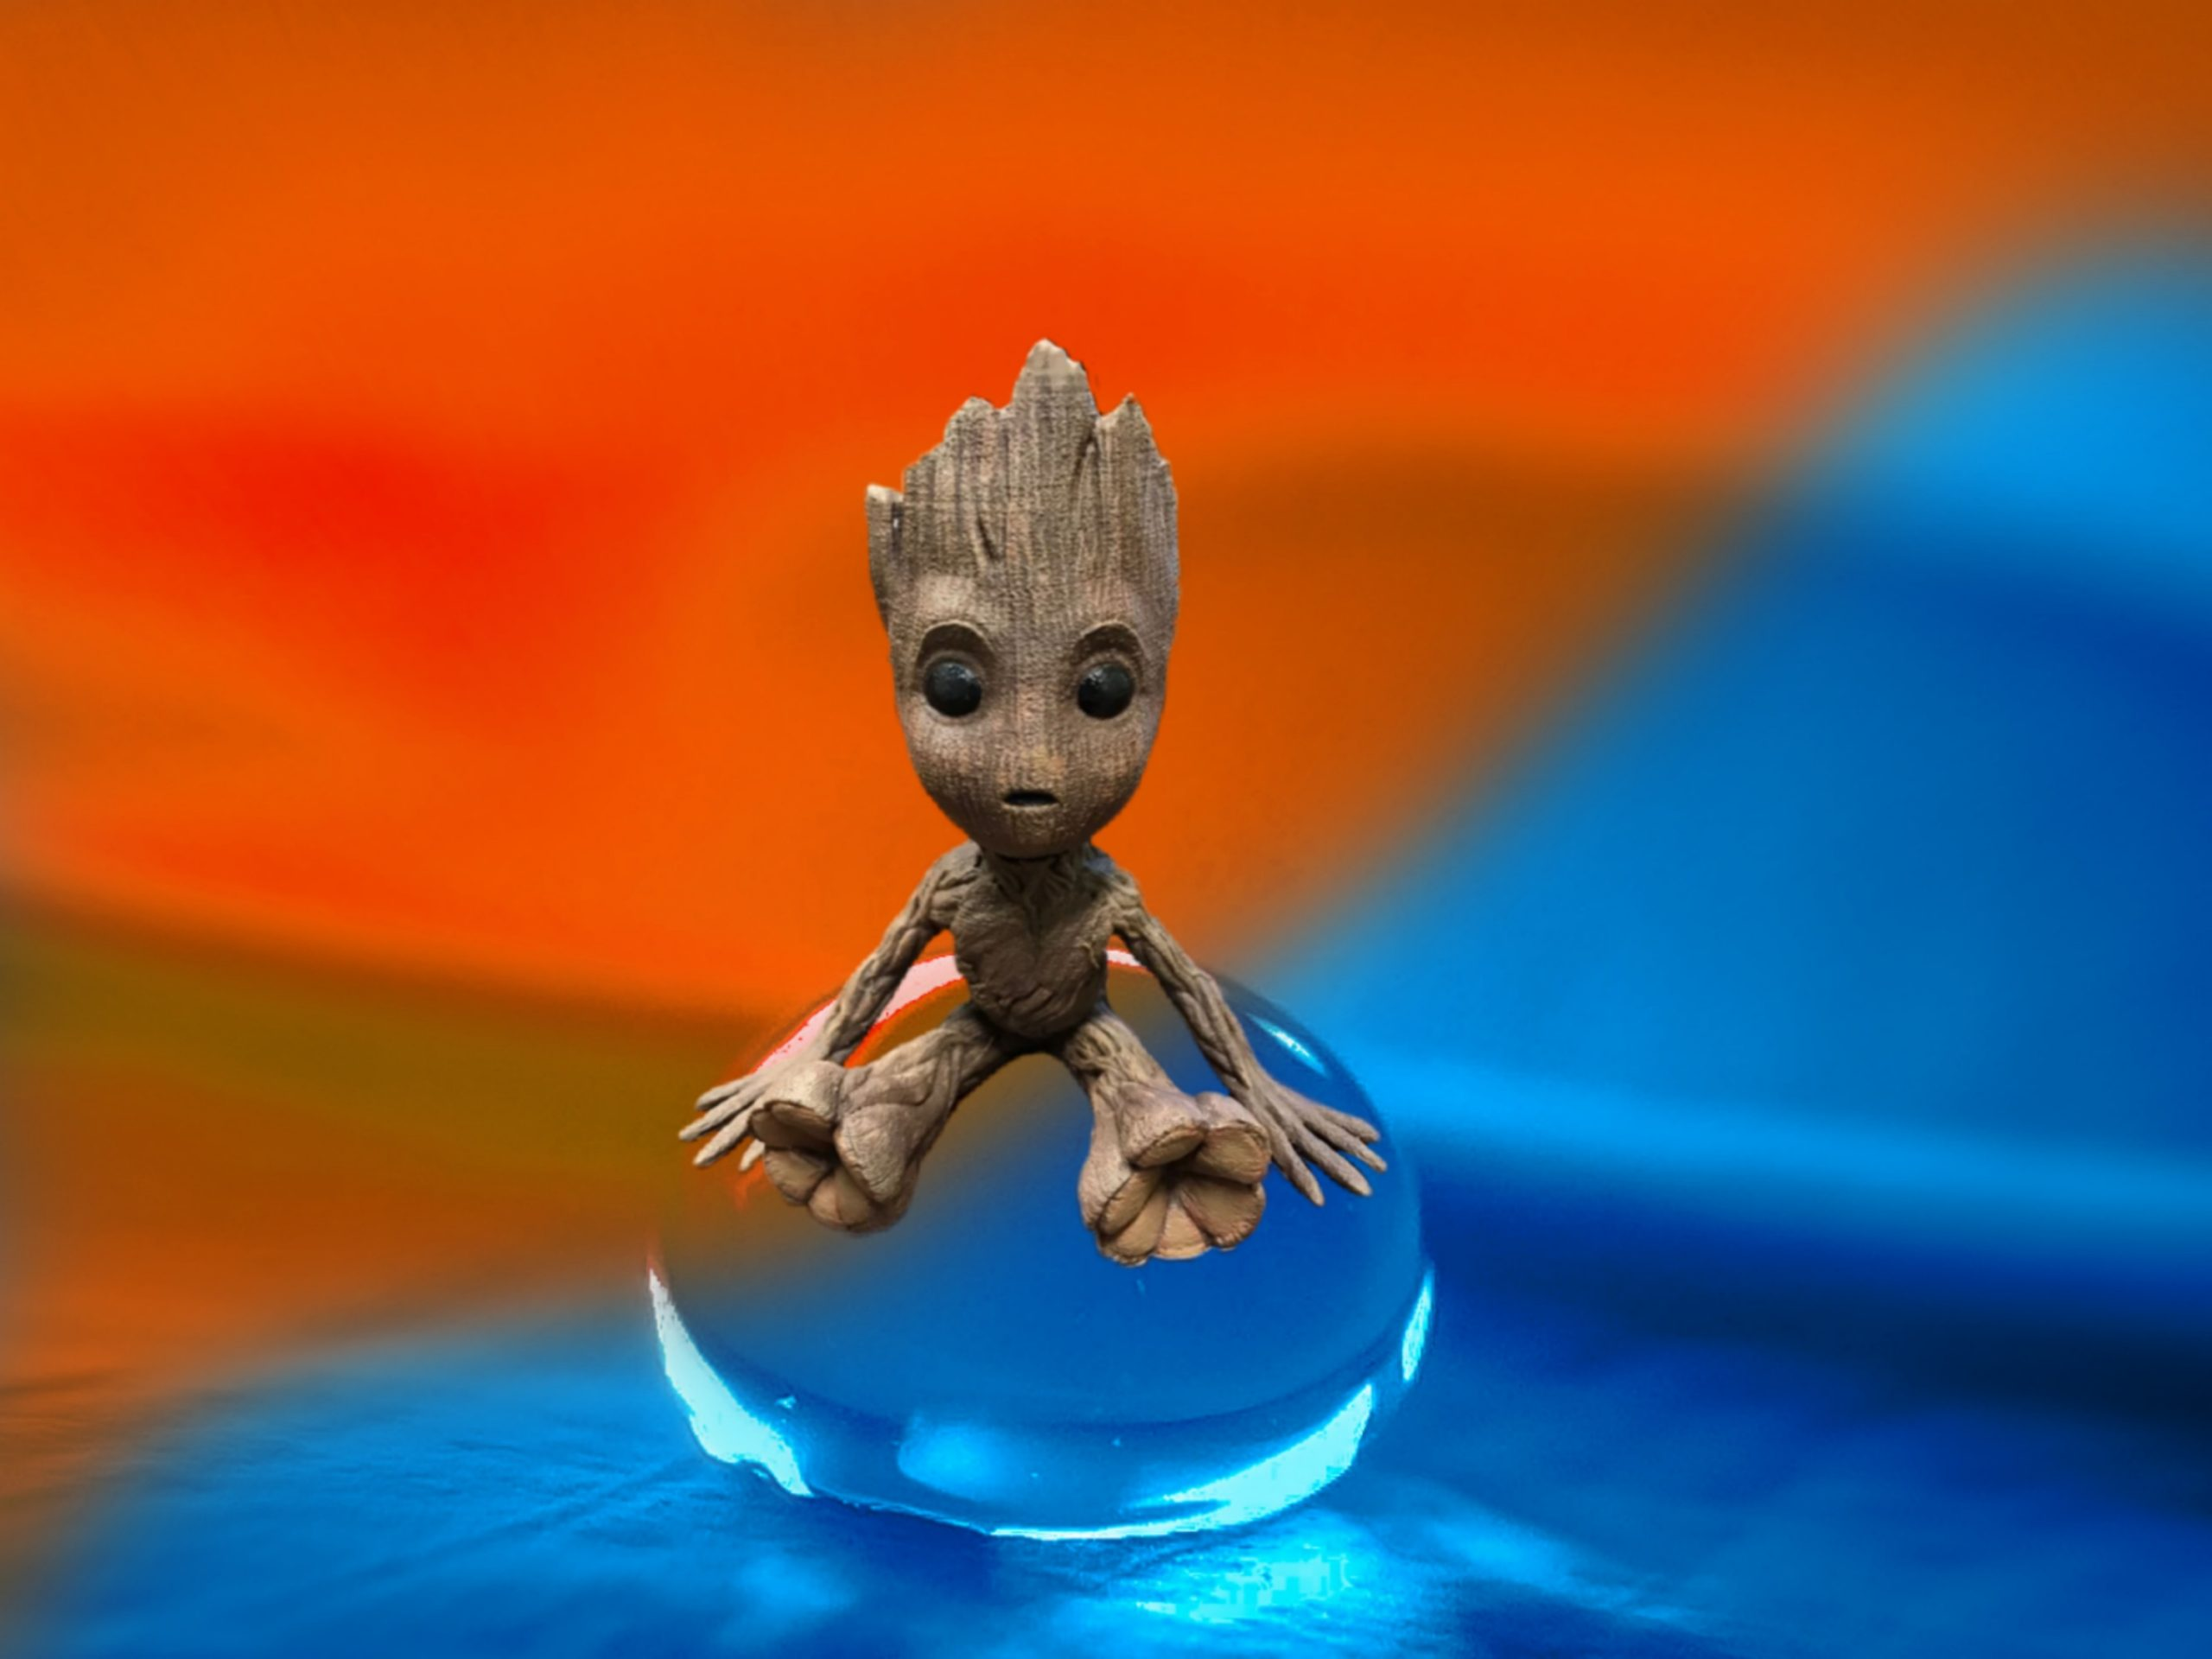 Fictional character Groot on a bubble